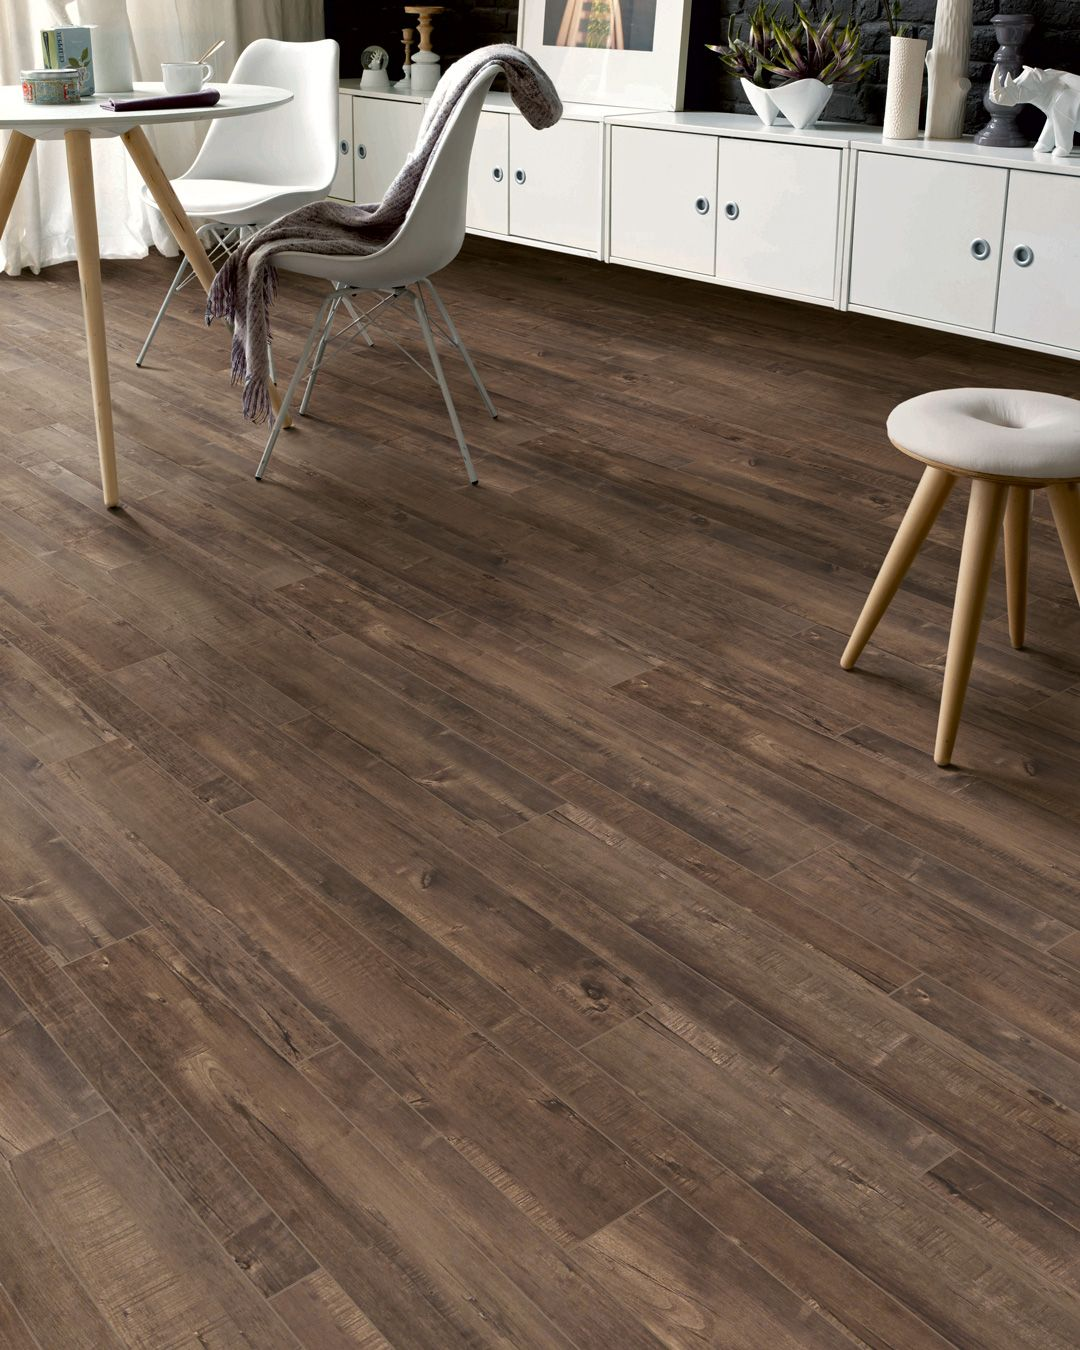 Tarkett Laminate Flooring occasions laminate flooring italian walnut 2136 sqftctn at menards Tarkett Laminate Fresh Air In Brindle